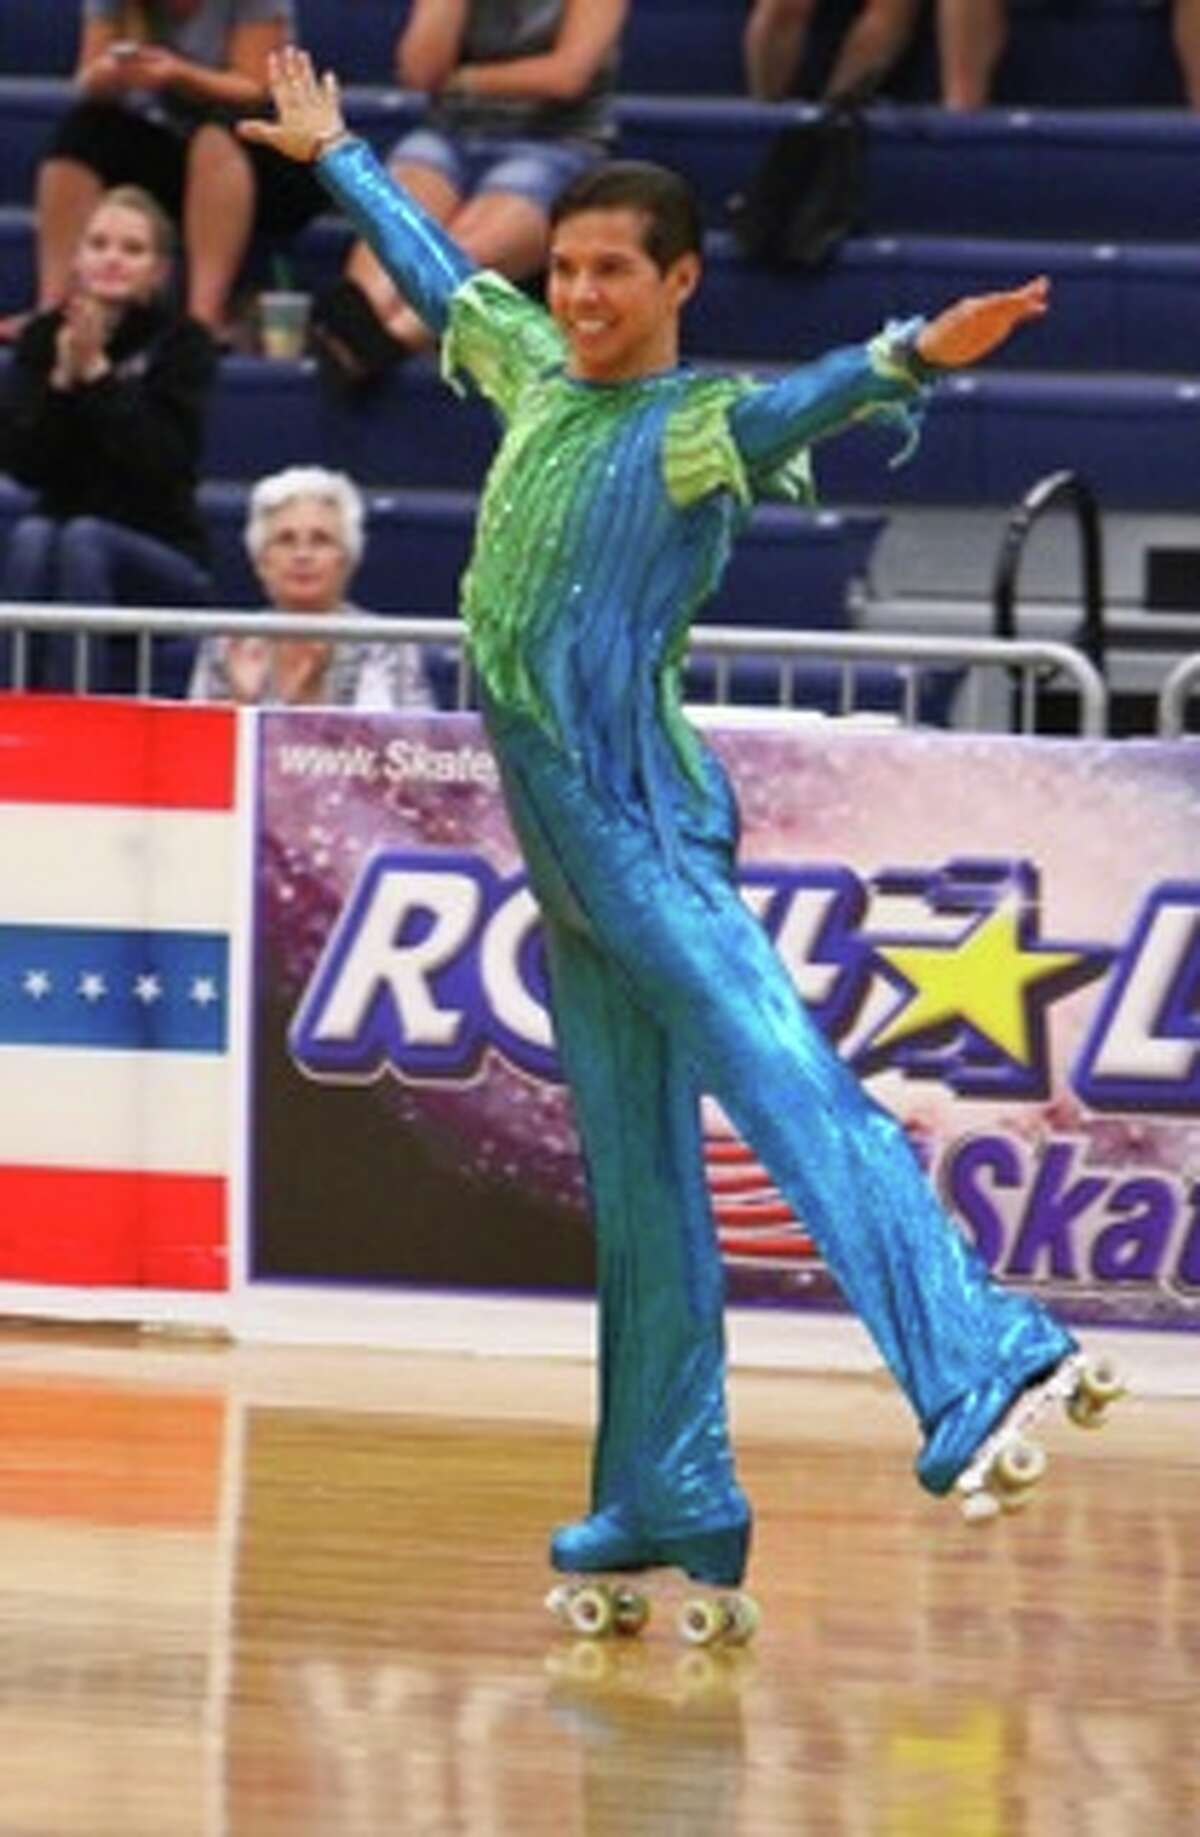 Mykal Pedraza became the oldest person to win a gold medal in a U.S. roller skating free style event in August 2014 at age 56.